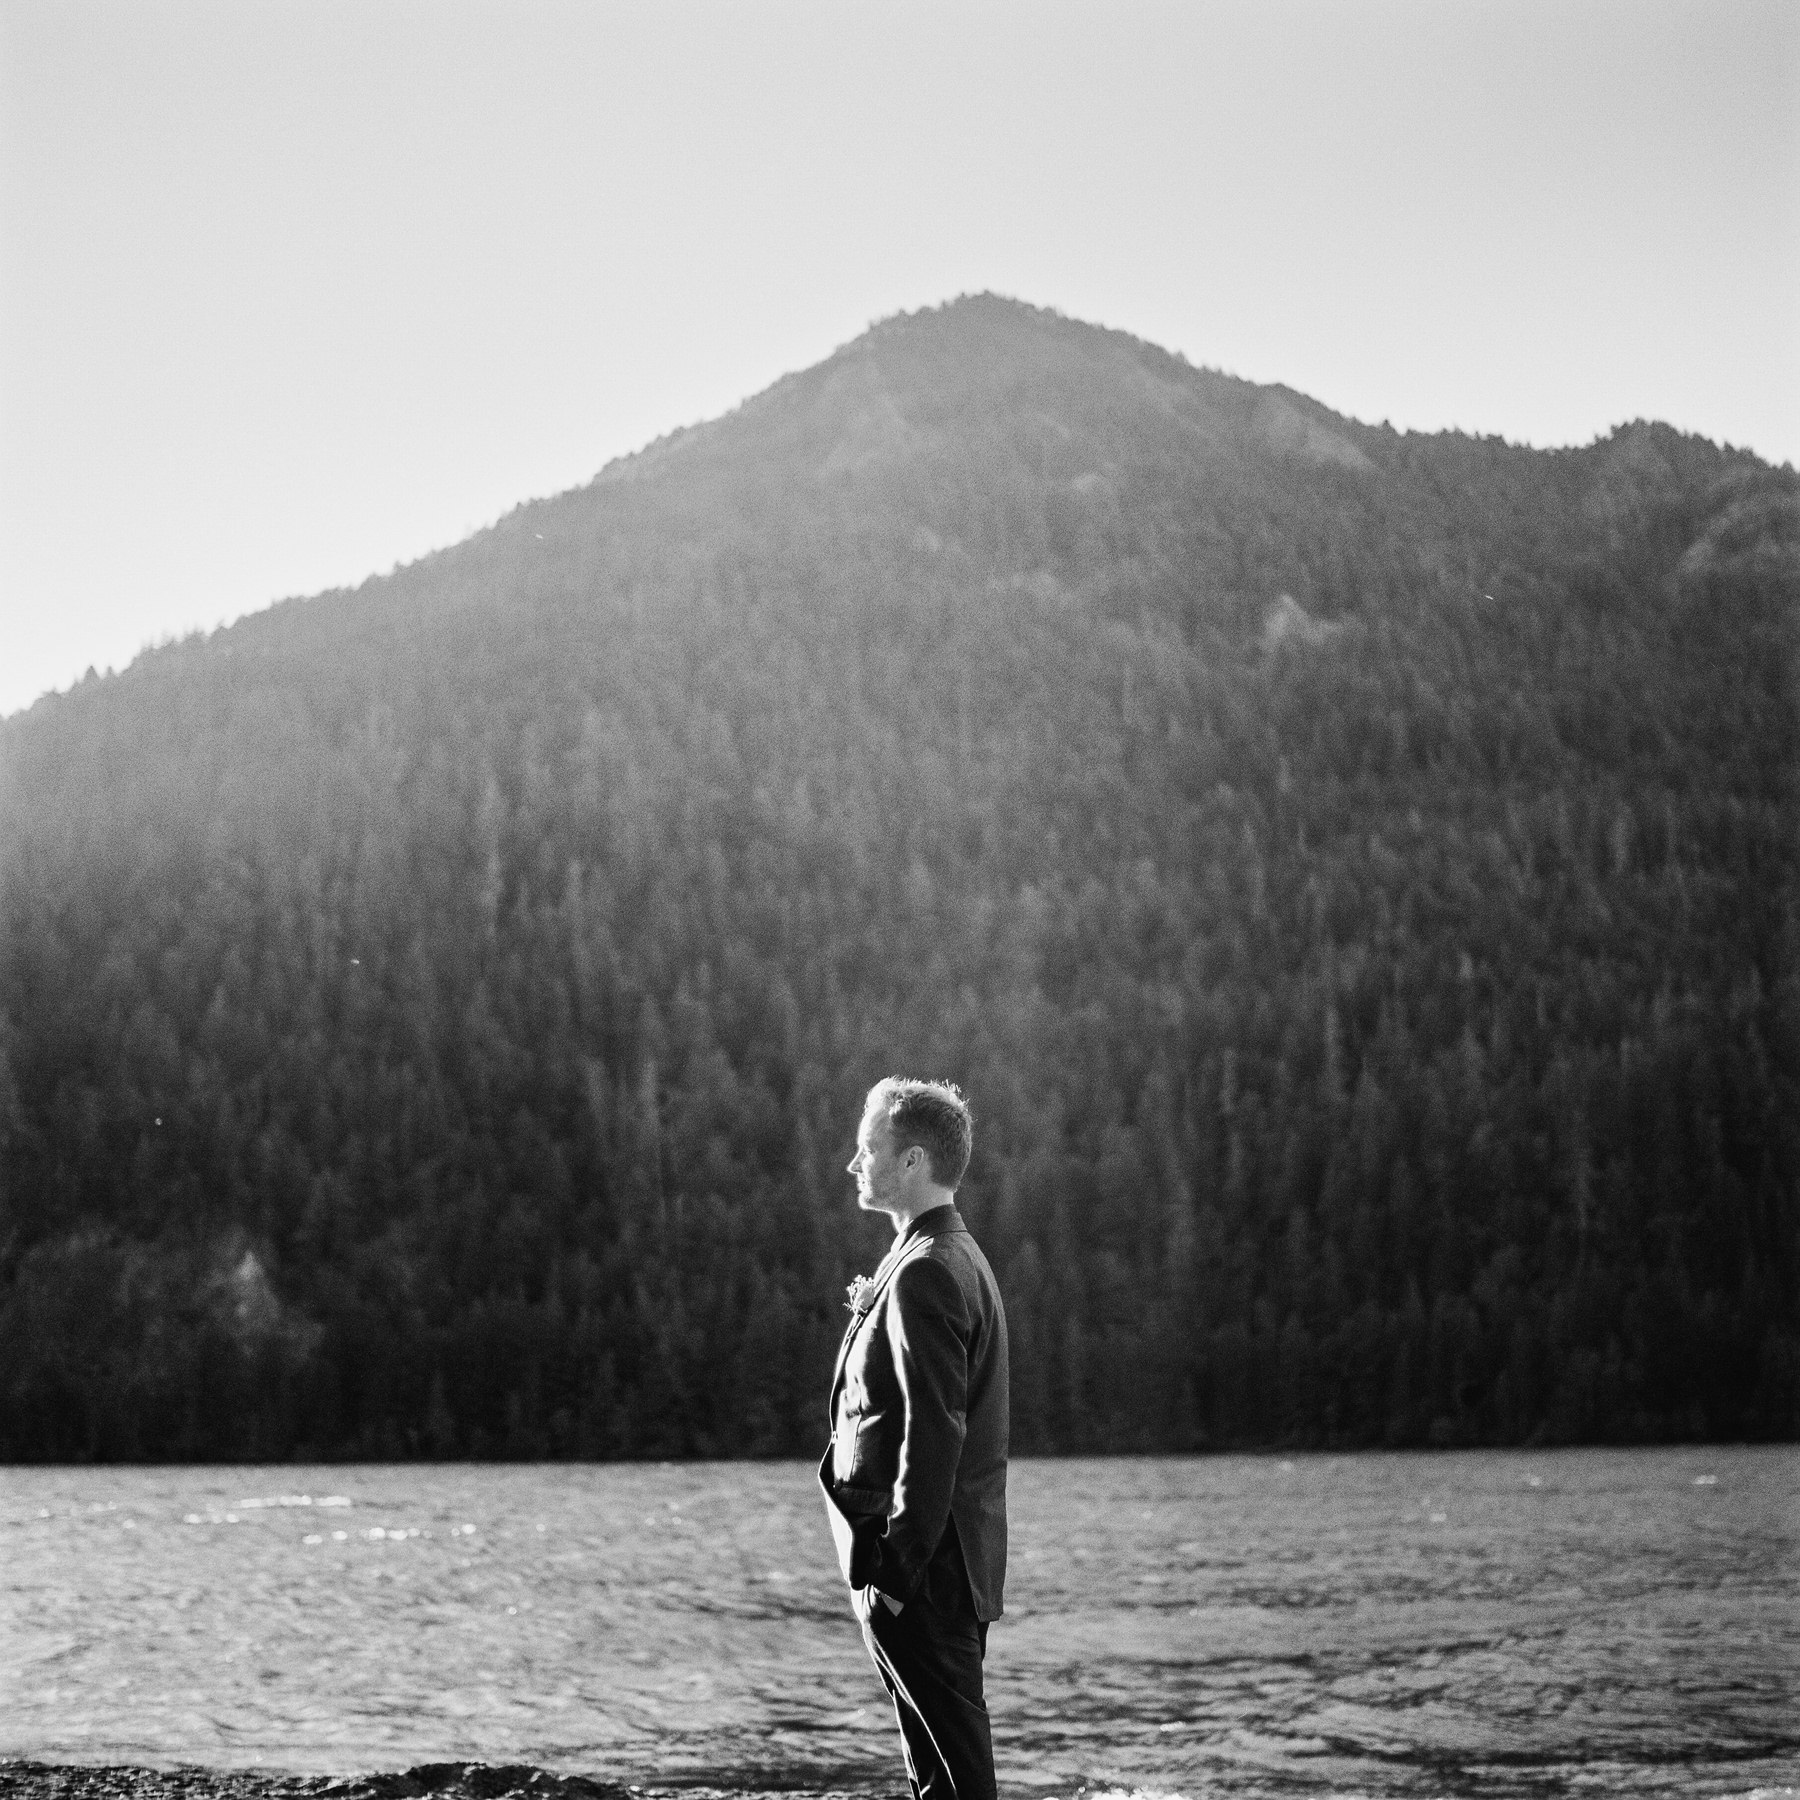 177-fine-art-film-wedding-portraits-at-nature-bride-near-the-lake-crescent-lodge.jpg